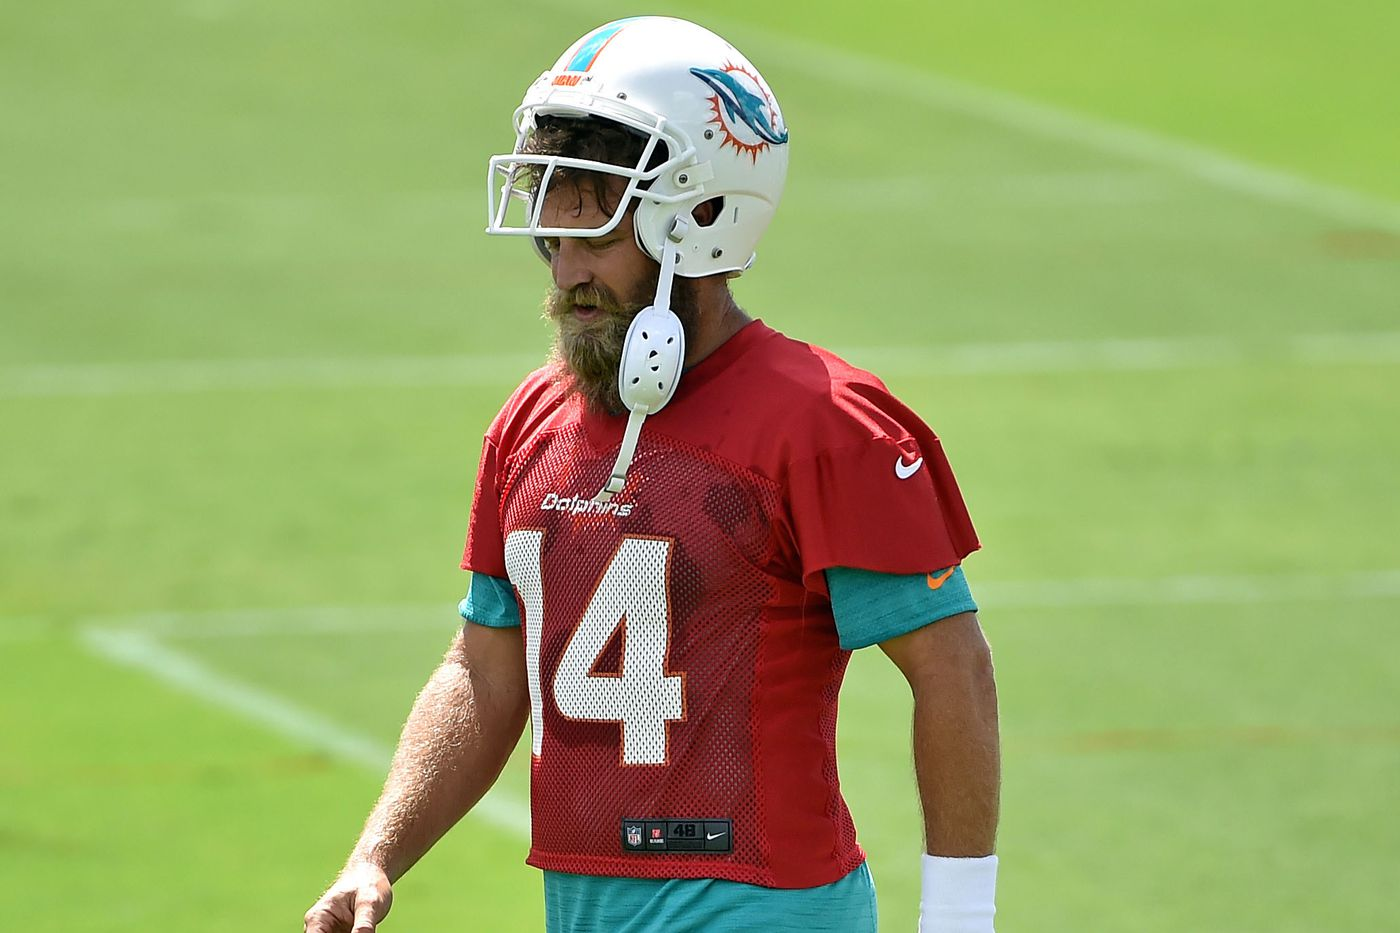 reputable site da008 f1f25 Miami Dolphins News 5/26/19: Ryan Fitzpatrick Stands Out ...